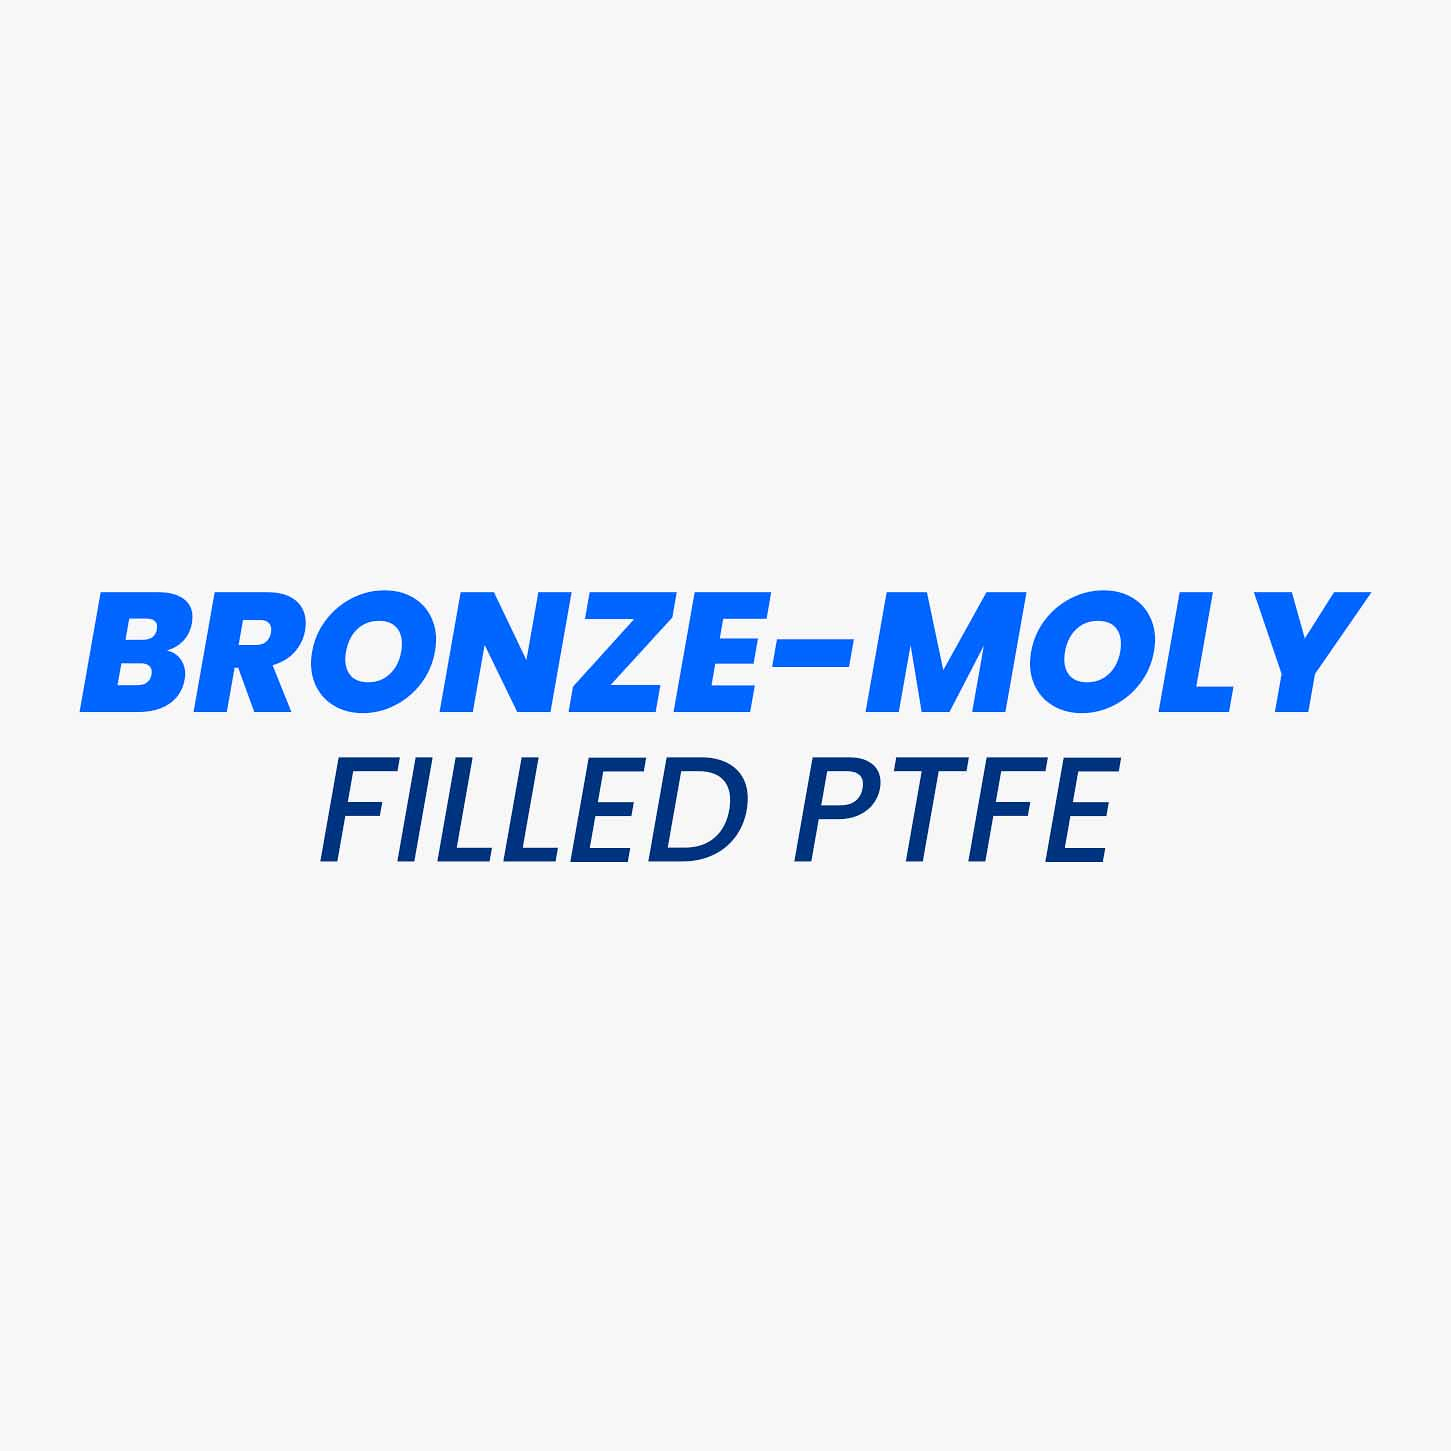 Moly (or Molybdenum Disulfide, MoS2) incorporates a lubricating effect, hence when added provides excellent anti-friction property to the product. Whereas, the Bronze-filled PTFE products do have excellent creep resistance, wear resistance and heat conductivity properties. But it has a higher resistance to friction as compared to other filled PTFE grades. Therefore, by using moly and bronze as additives in PTFE, the starting coefficient of friction is reduced, as well as enhancing the thermal conductivity, creep, and wear resistance properties. The Bronze-moly filled PTFE components have higher resistance to pressure and lower seals abrasion characteristics. Bronze-moly filled PTFE is available in any ratio required.